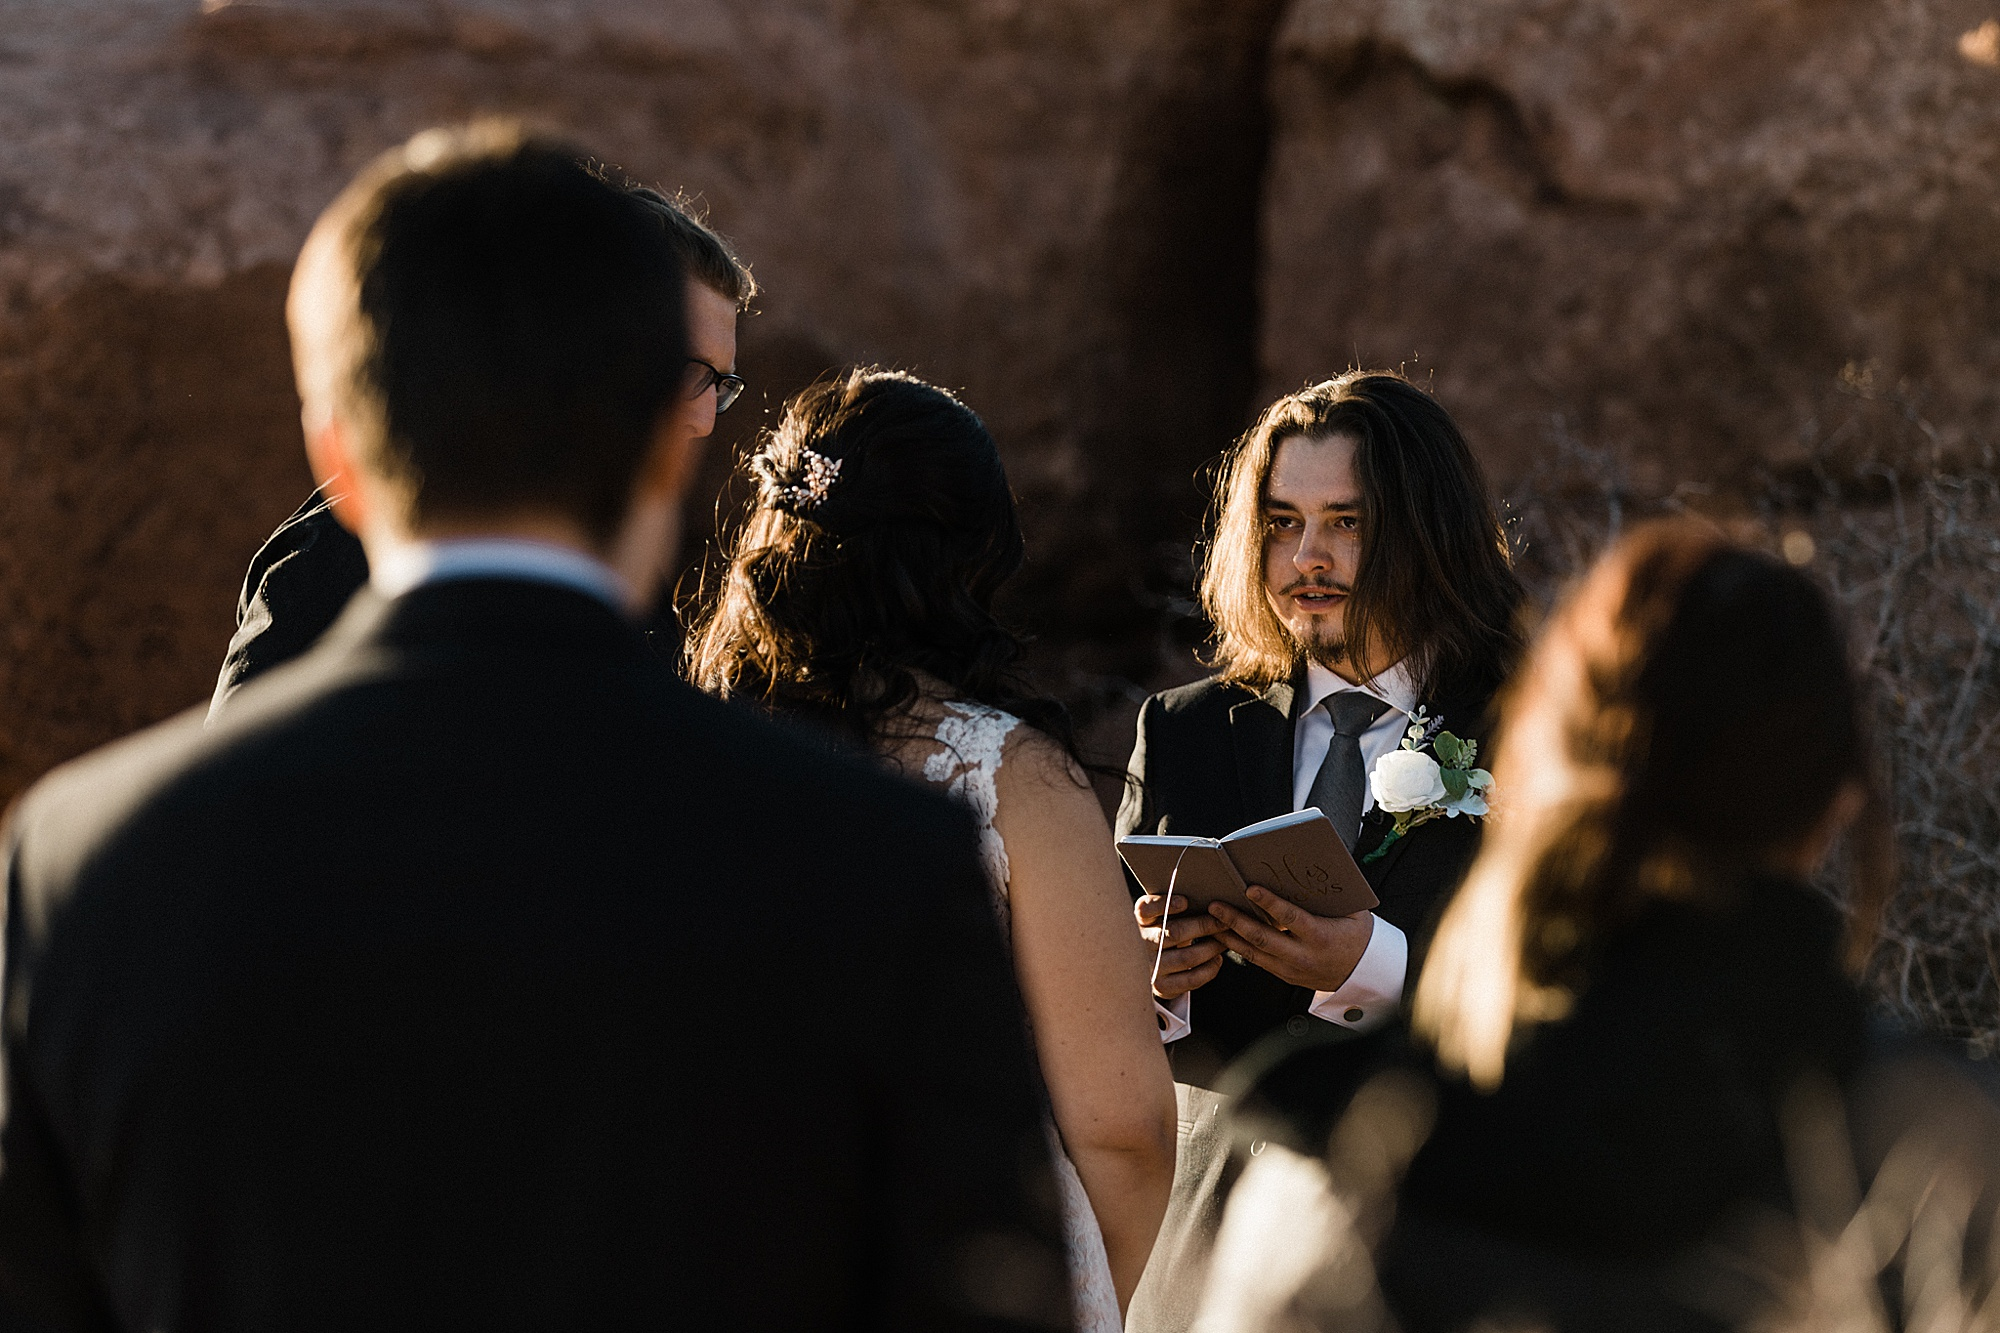 Adventurous Moab Elopement | Destination Elopement Photographer + Videographer | Dead Horse Point State Park Wedding | Vow of the Wild